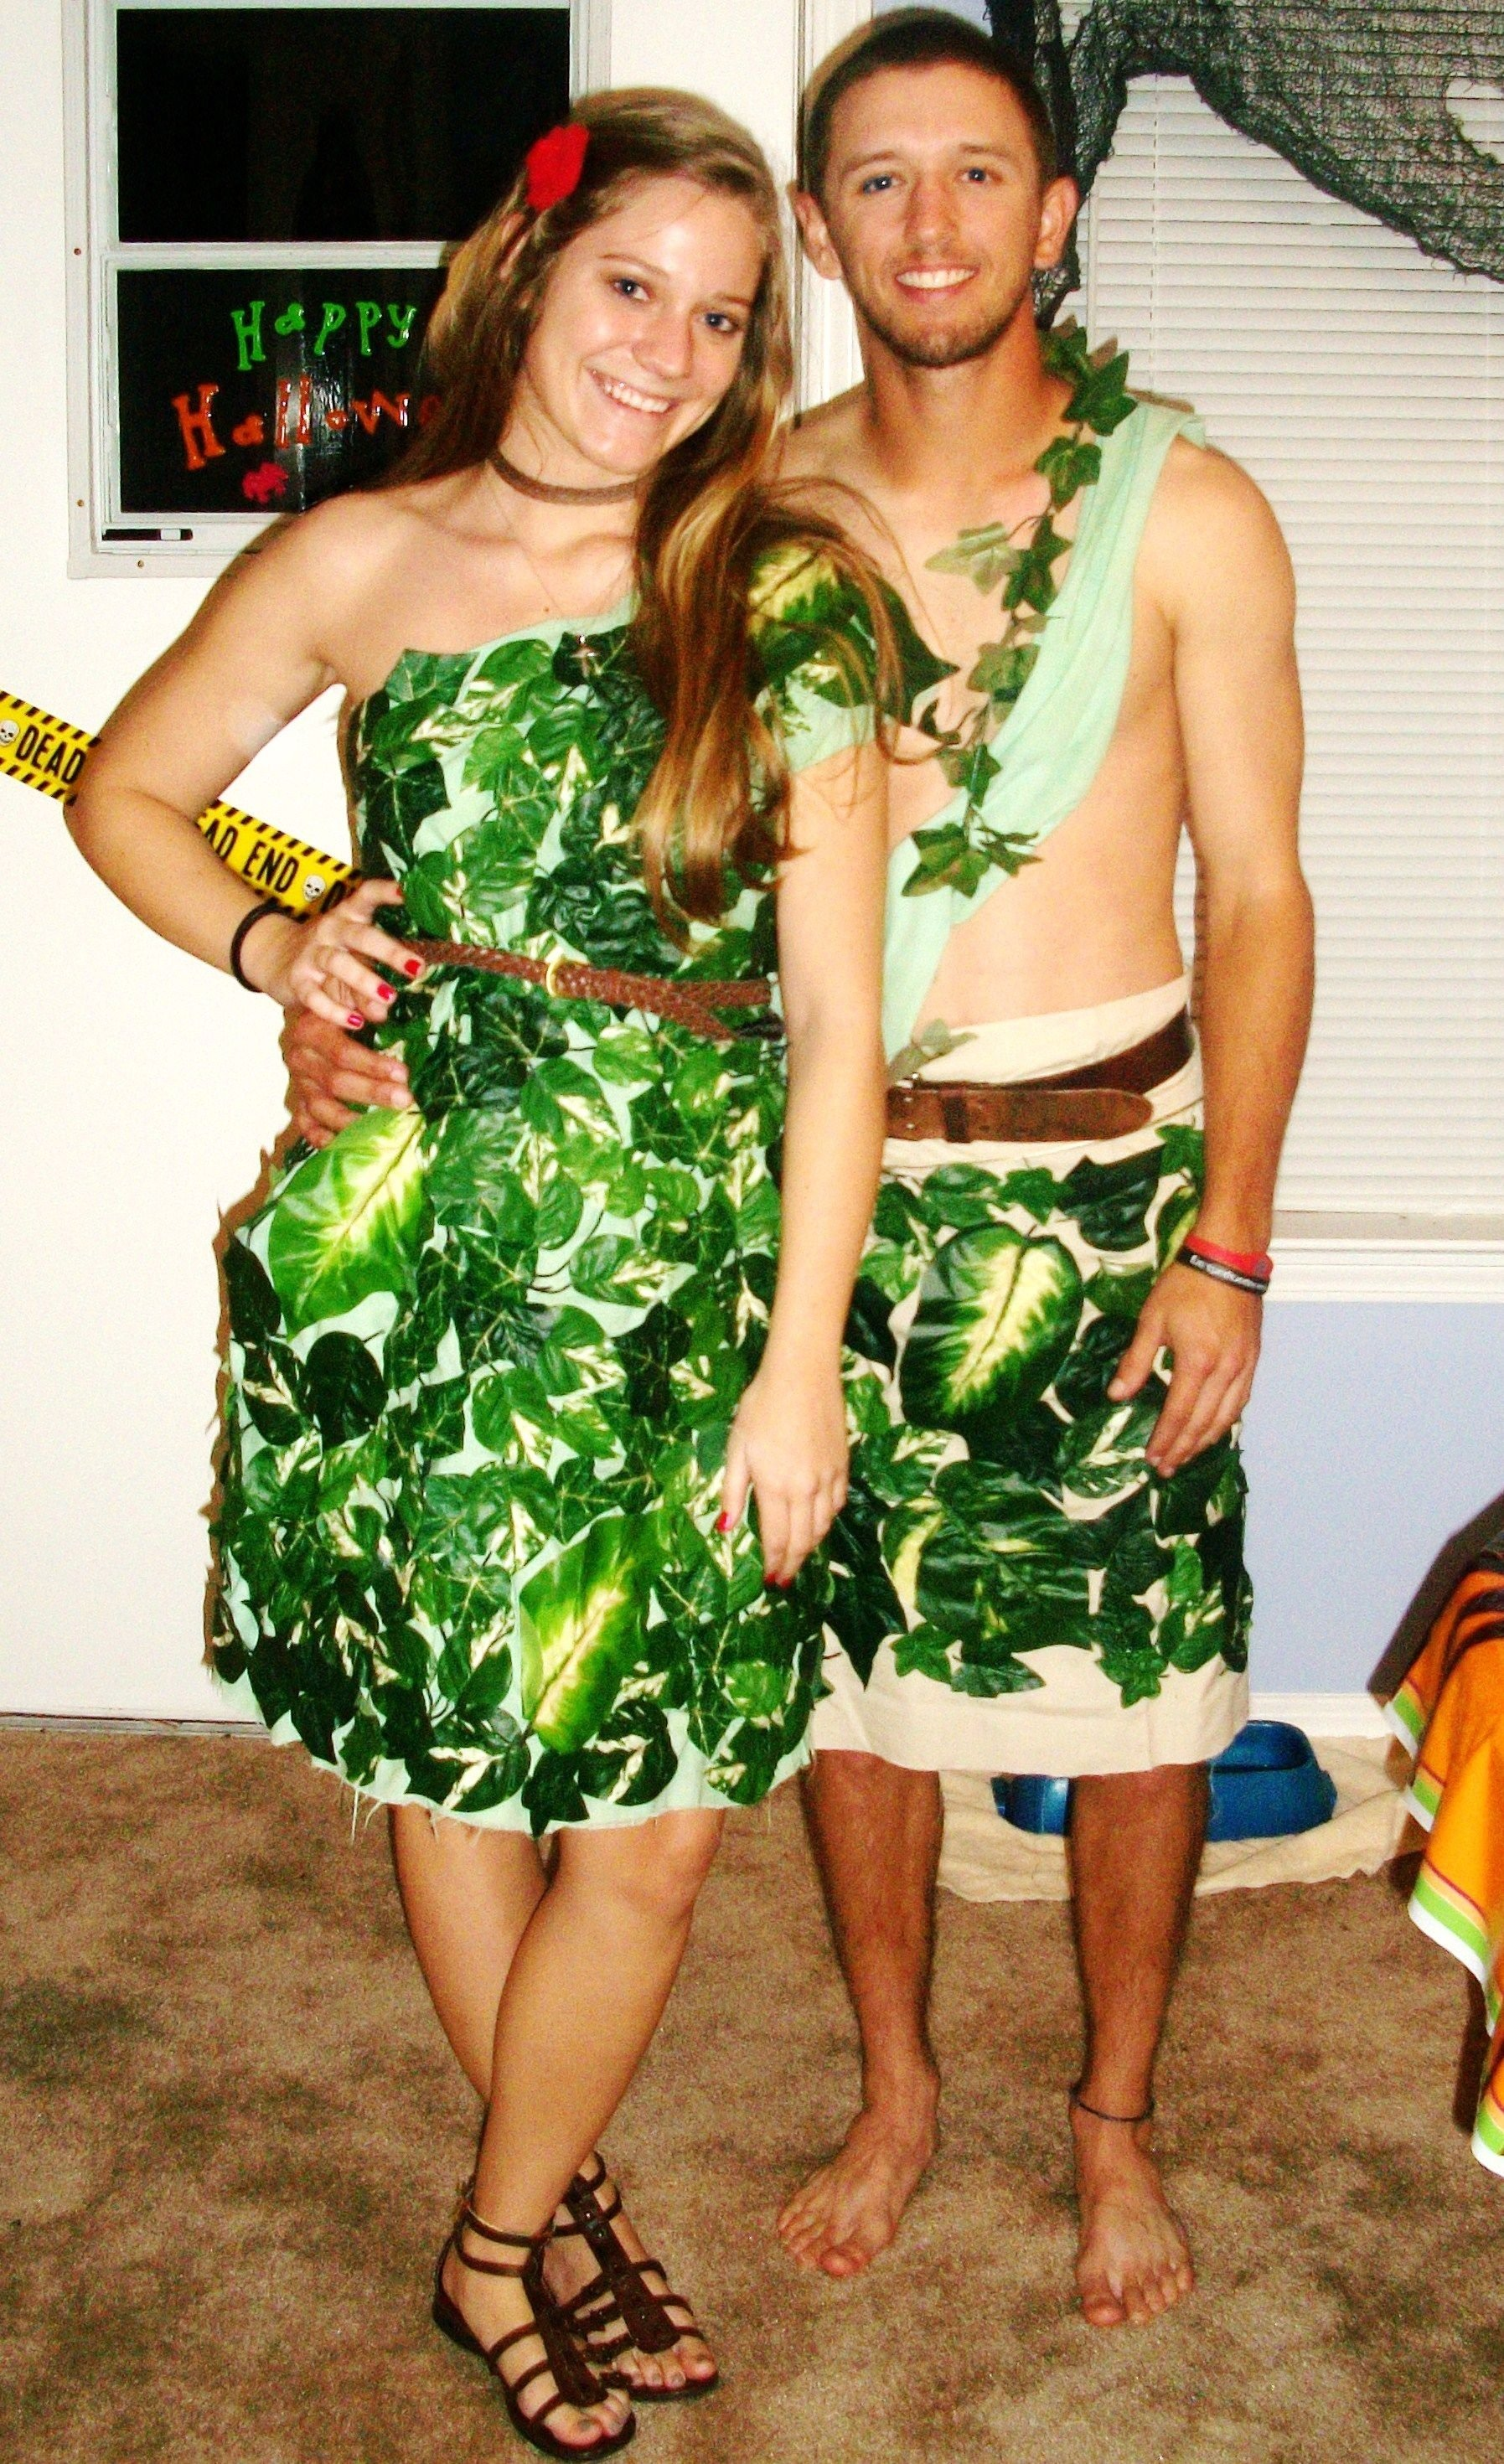 10 Fabulous Adam And Eve Costume Ideas adam and eve halloween costume made with a green sheet cut into a 2020